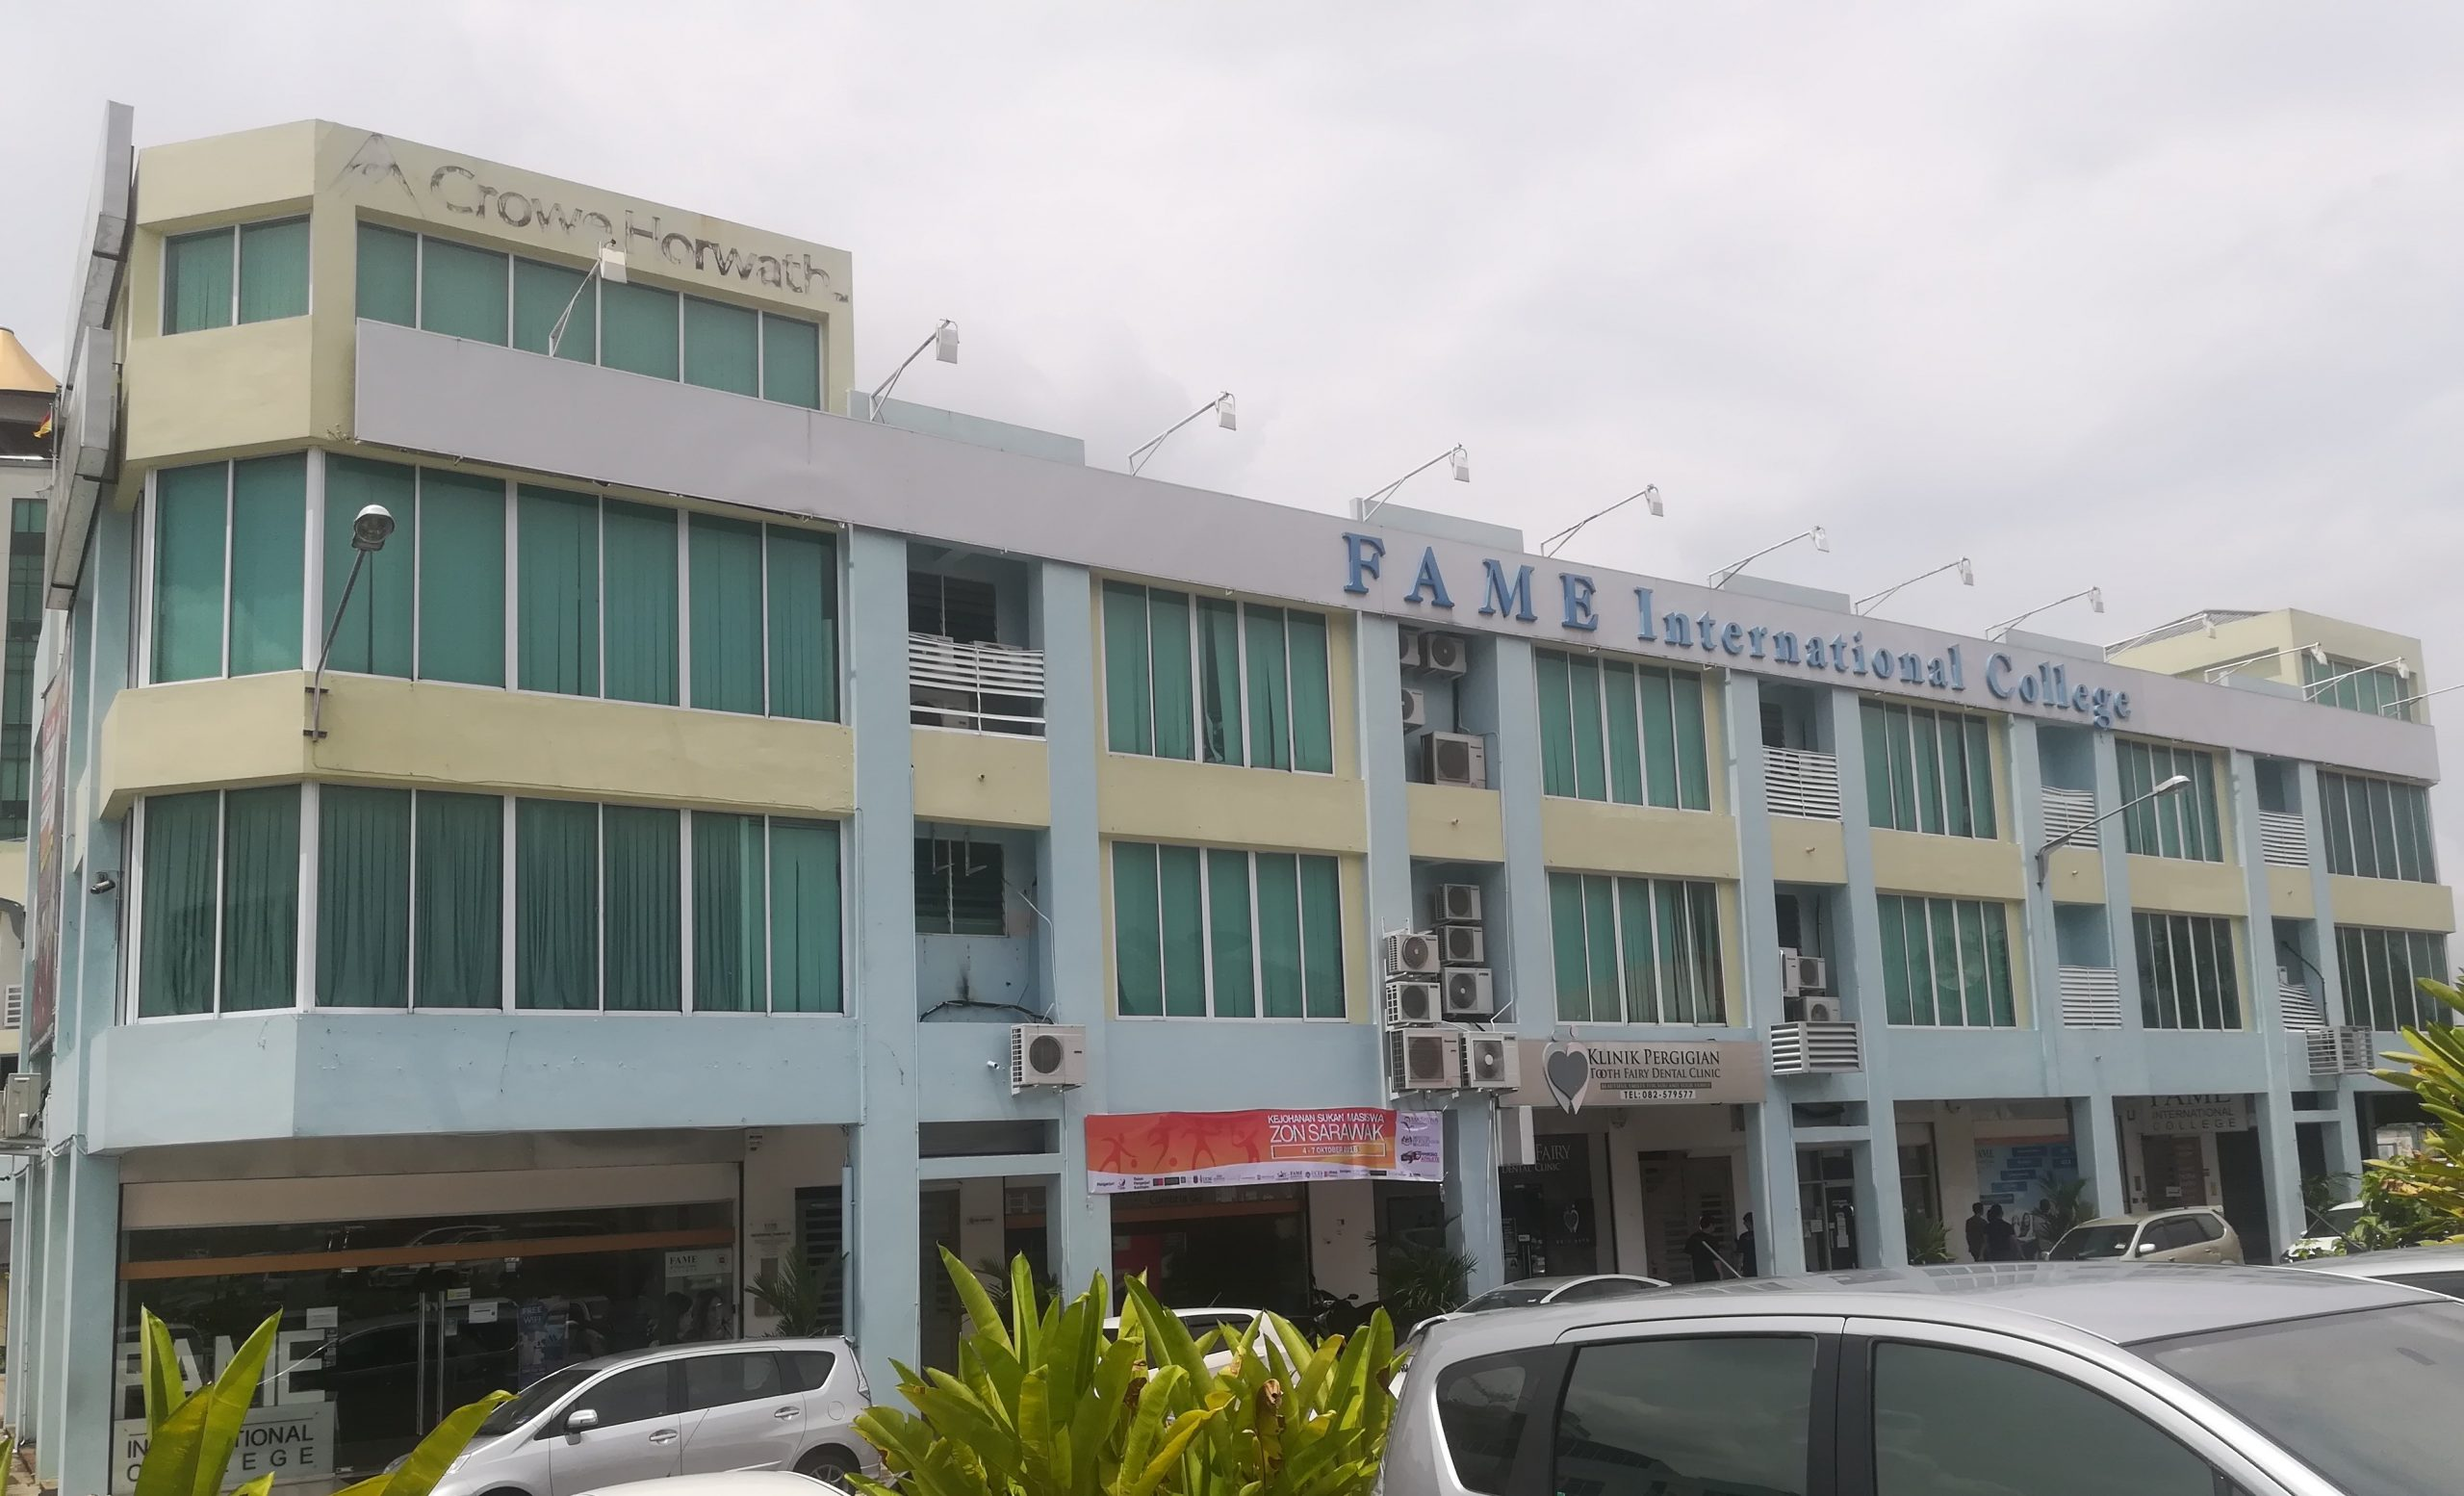 FAME International College - campus